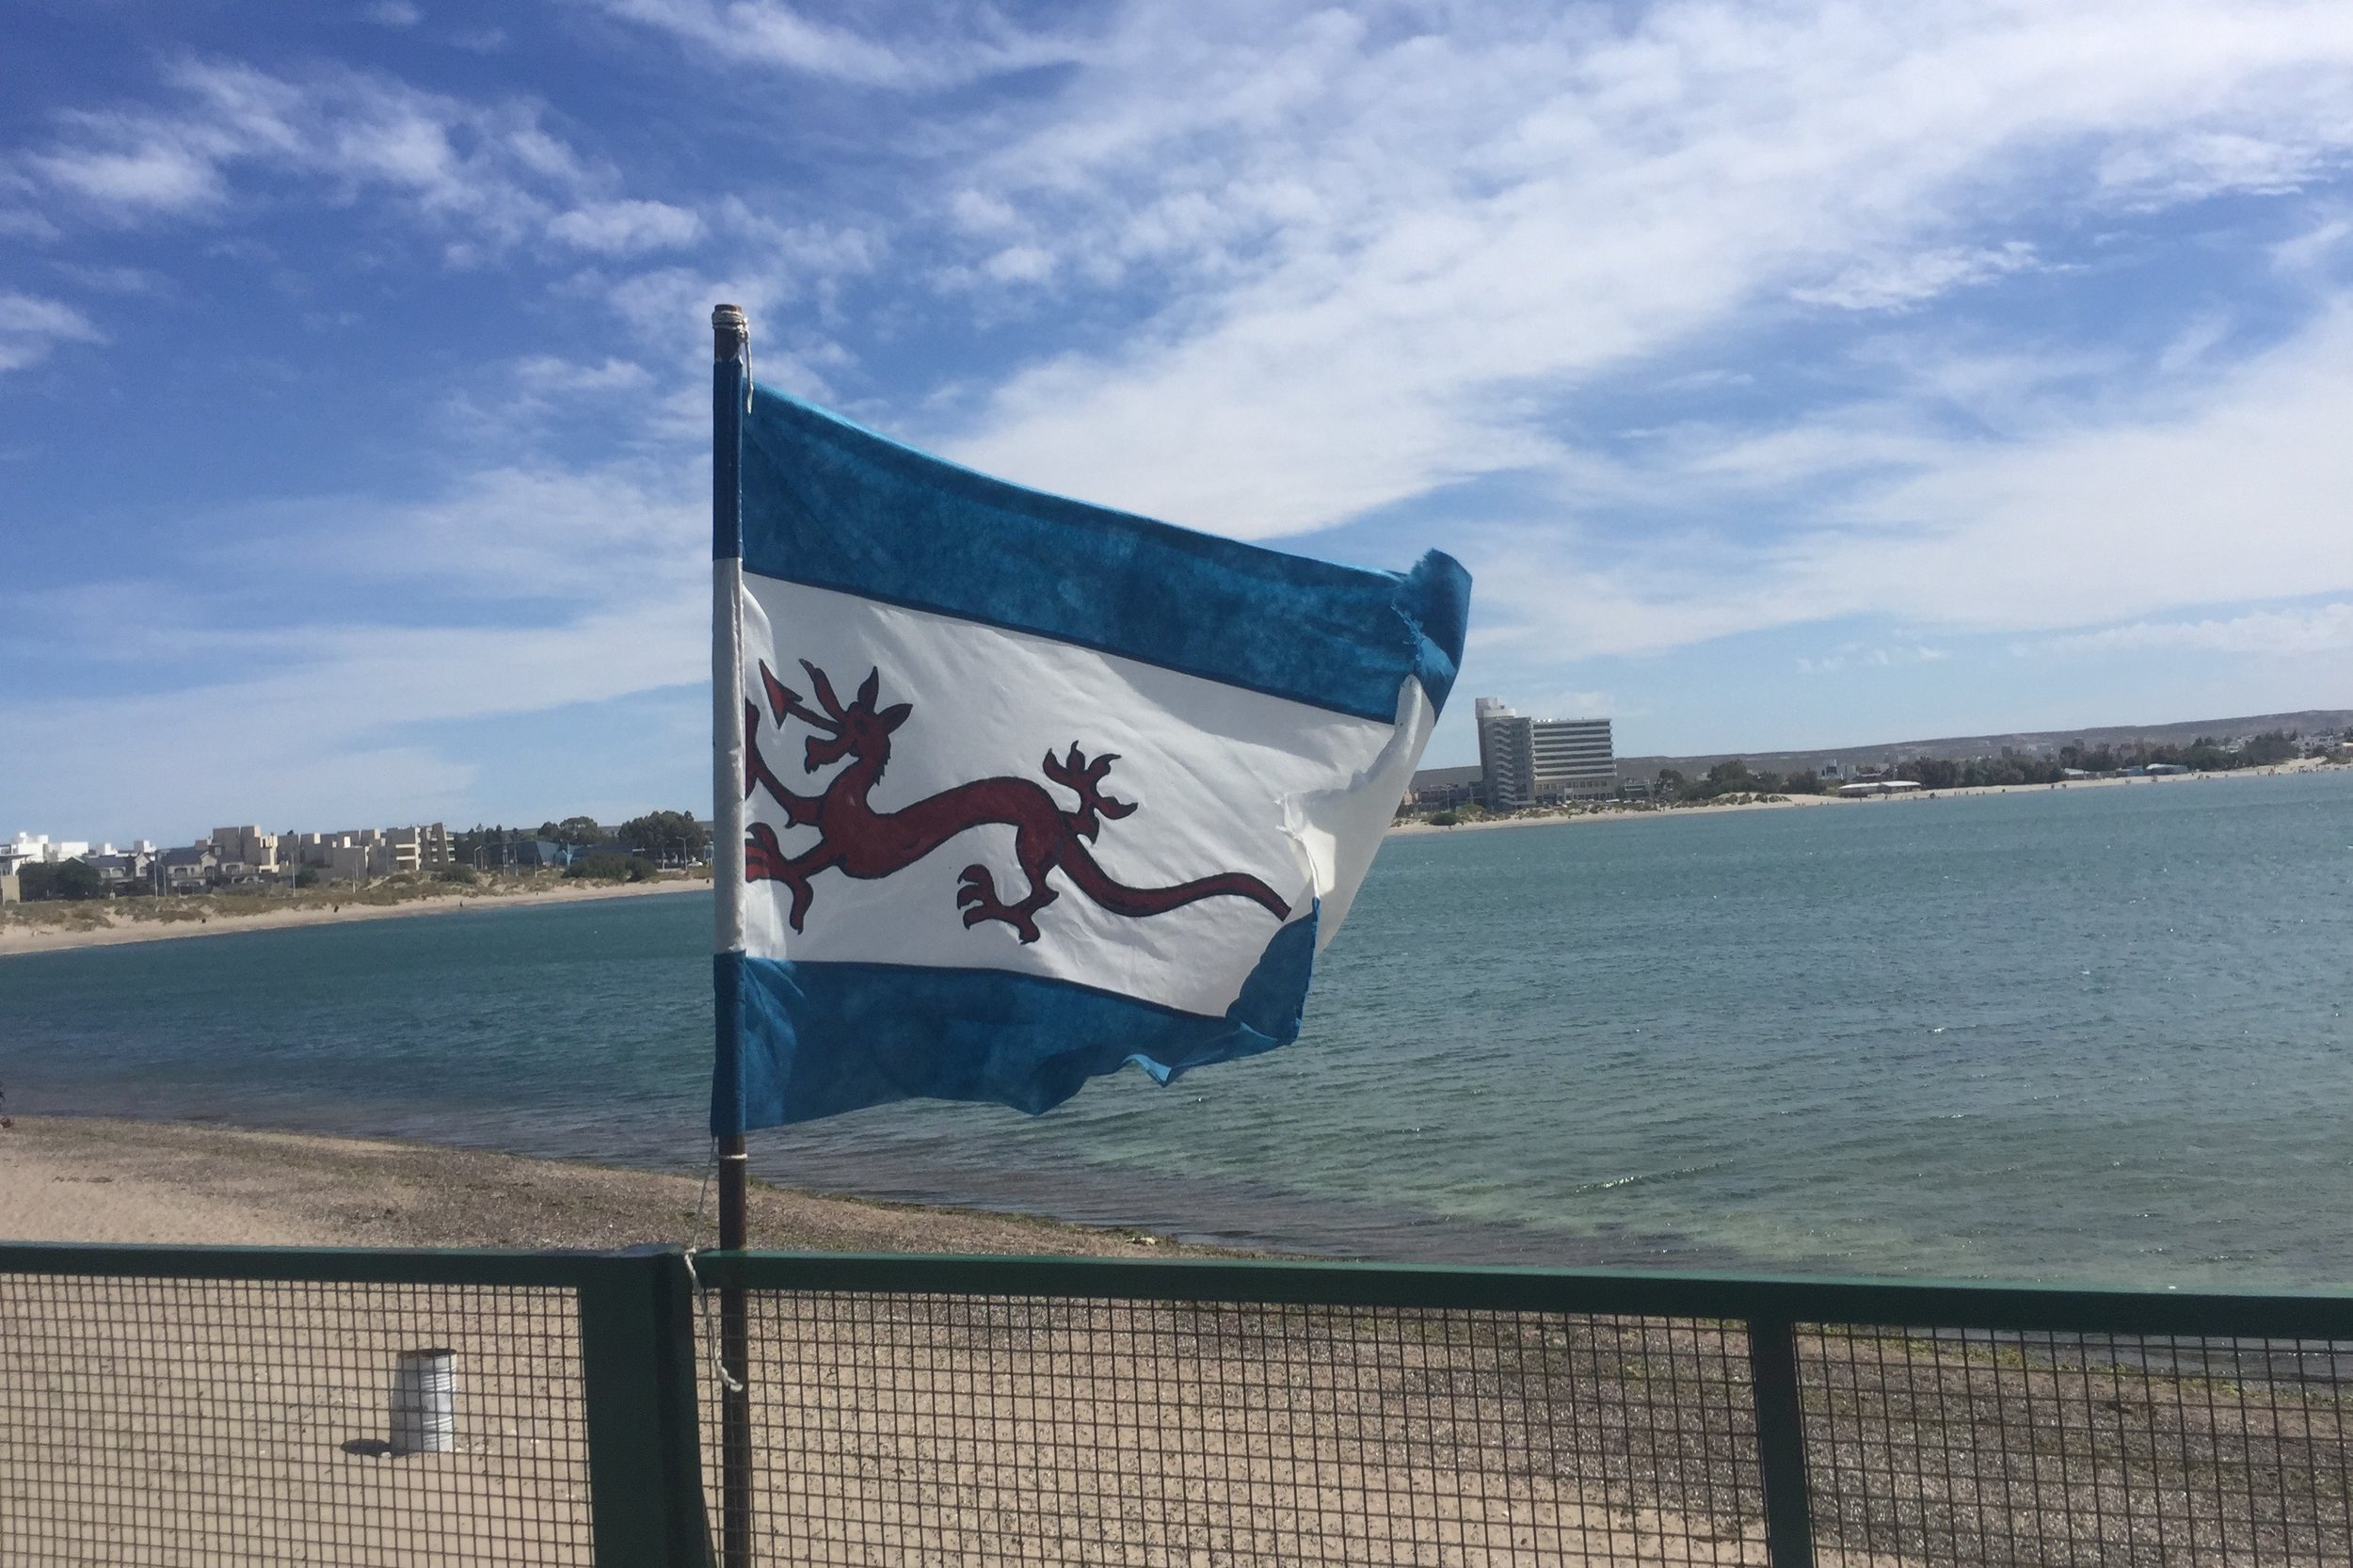 The unofficial flag of Welsh Patagonia, combining the Welsh dragon and the blue stripes from the Argentinian flag.